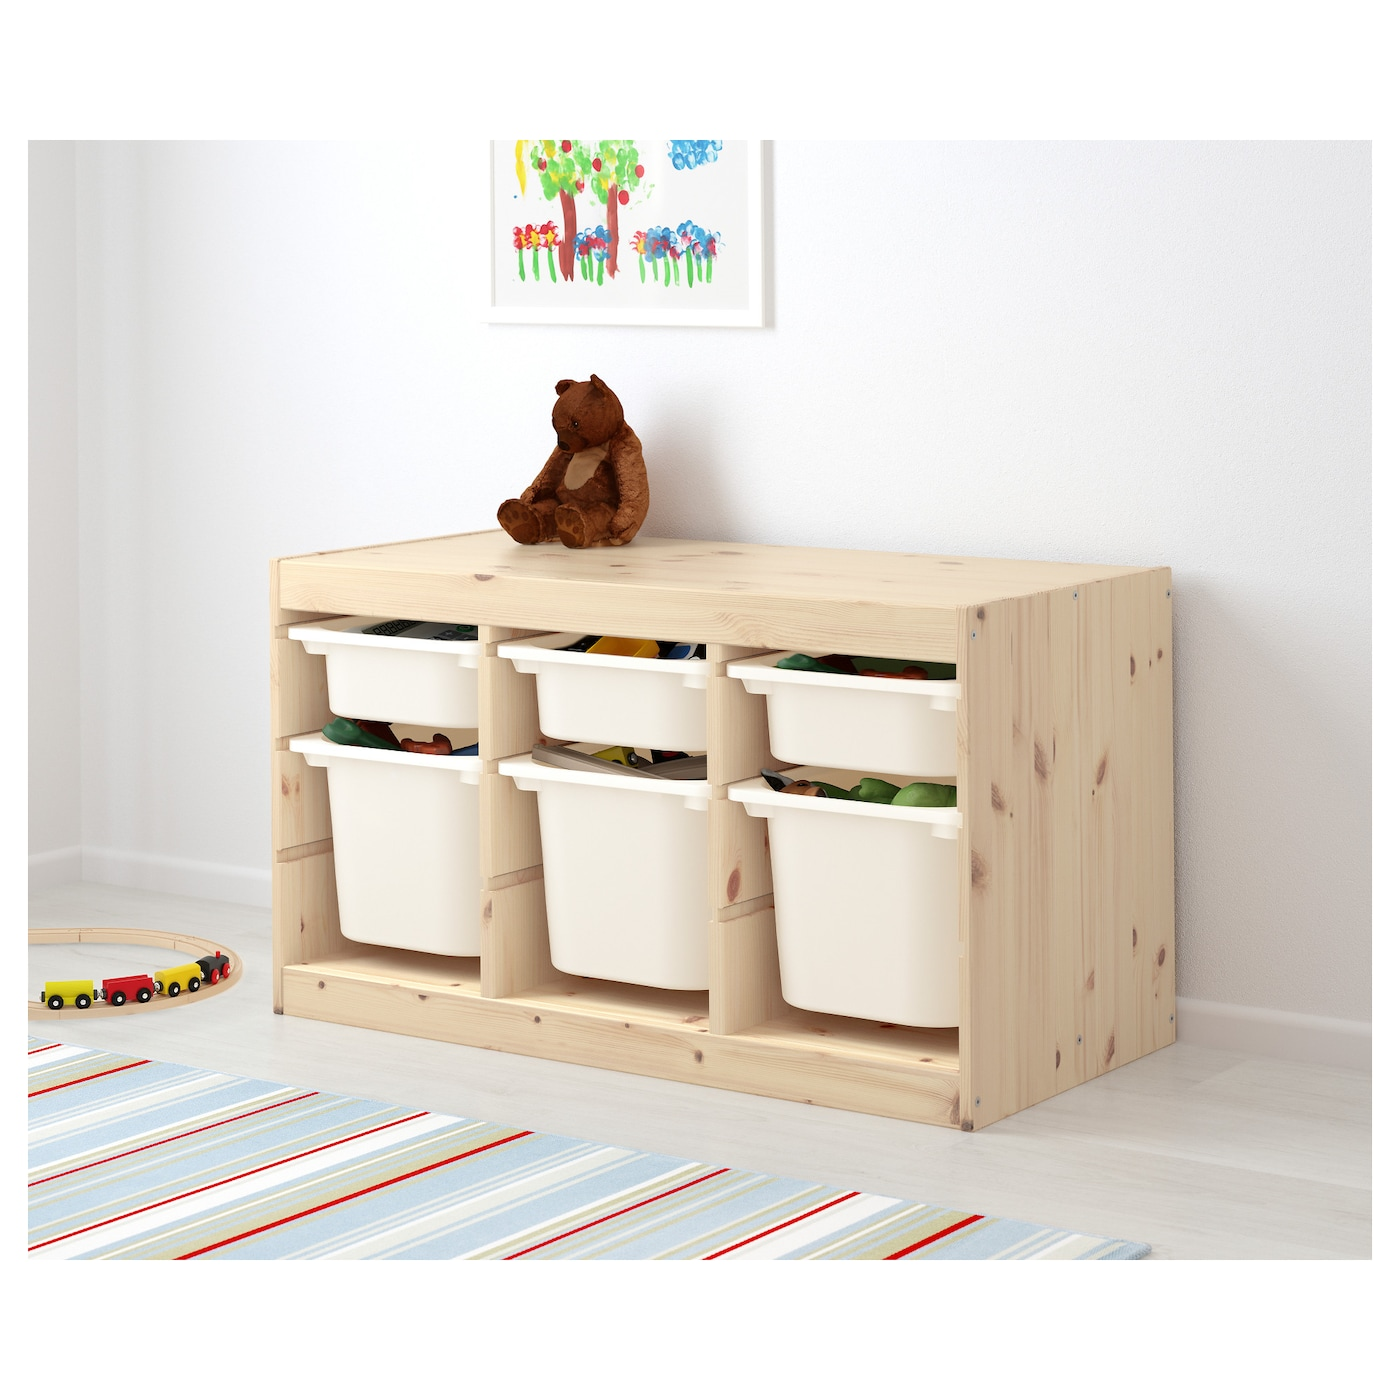 trofast storage combination with boxes light white stained pine white 94x44x52 cm ikea. Black Bedroom Furniture Sets. Home Design Ideas